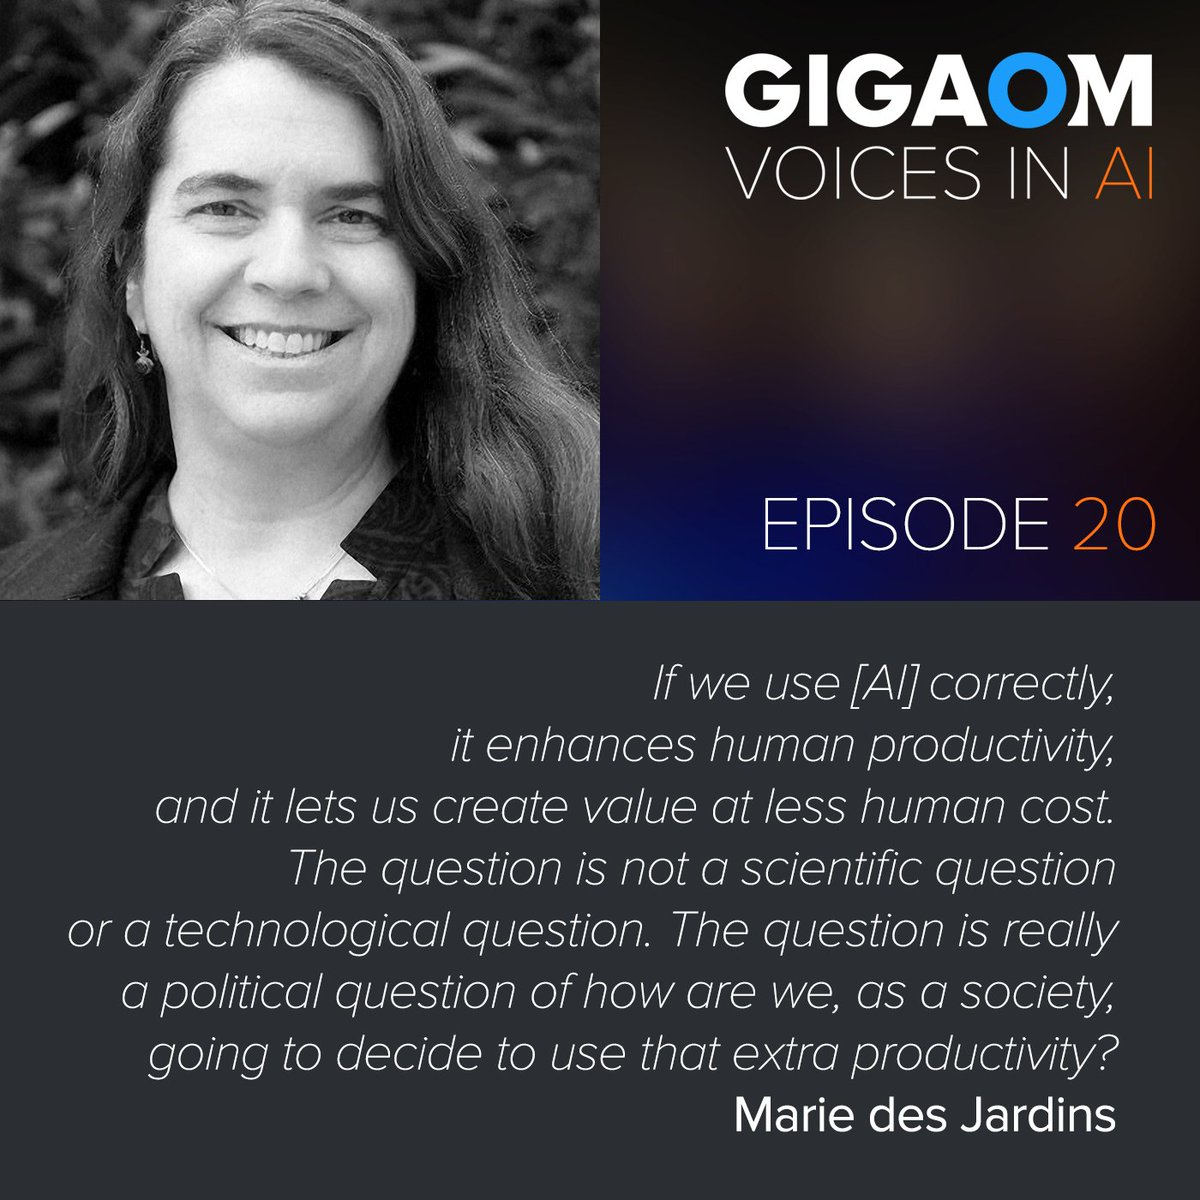 test Twitter Media - On Episode 20 of @VoicesinAI Professor and AI Researcher Marie des Jardins talks w/ @byronreese about the Turing test, #Watson and language processing. #AI @mariedj17 https://t.co/0cTi8Mv7Gv https://t.co/pIcGPXVrwE